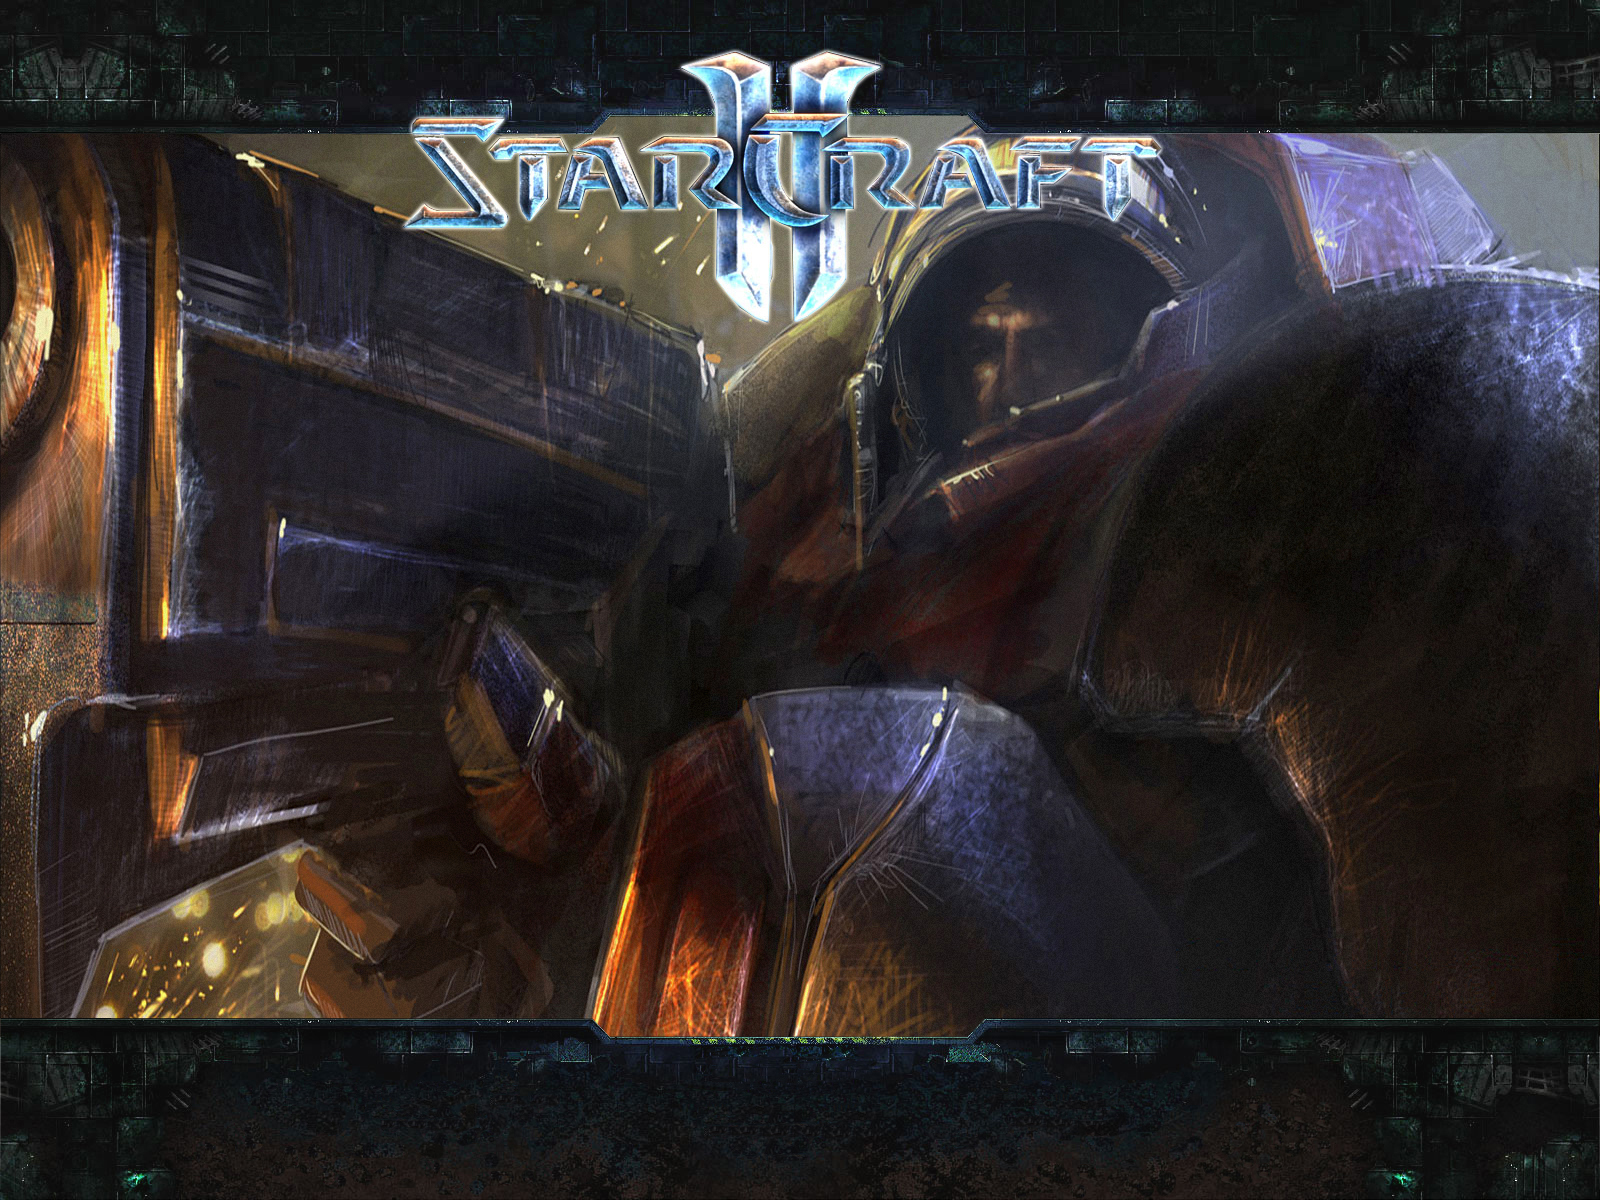 starcraft II Terran by HD Wallpaper